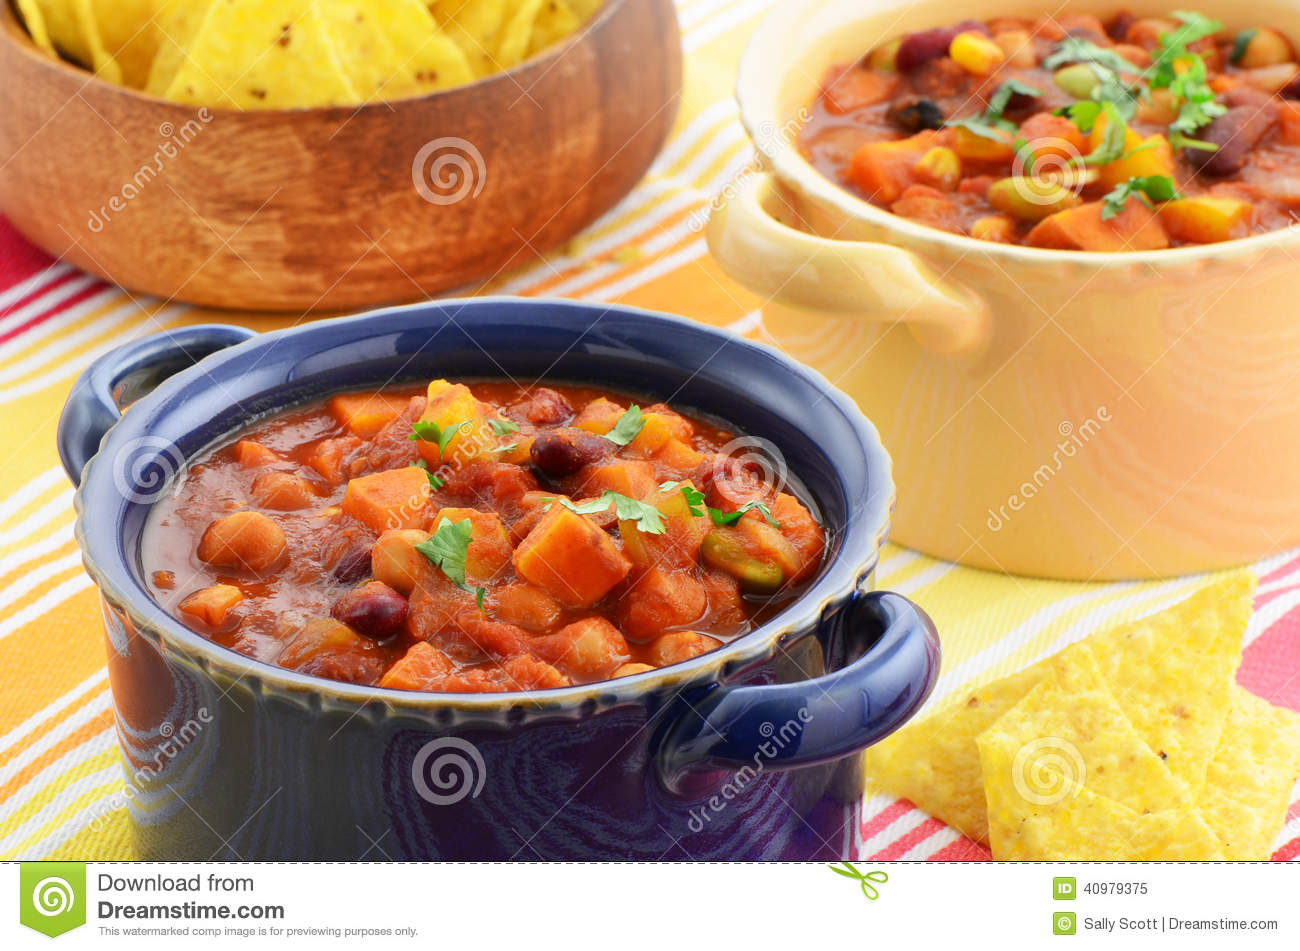 Vegetarian Chili Stock Photo - Image: 40979375